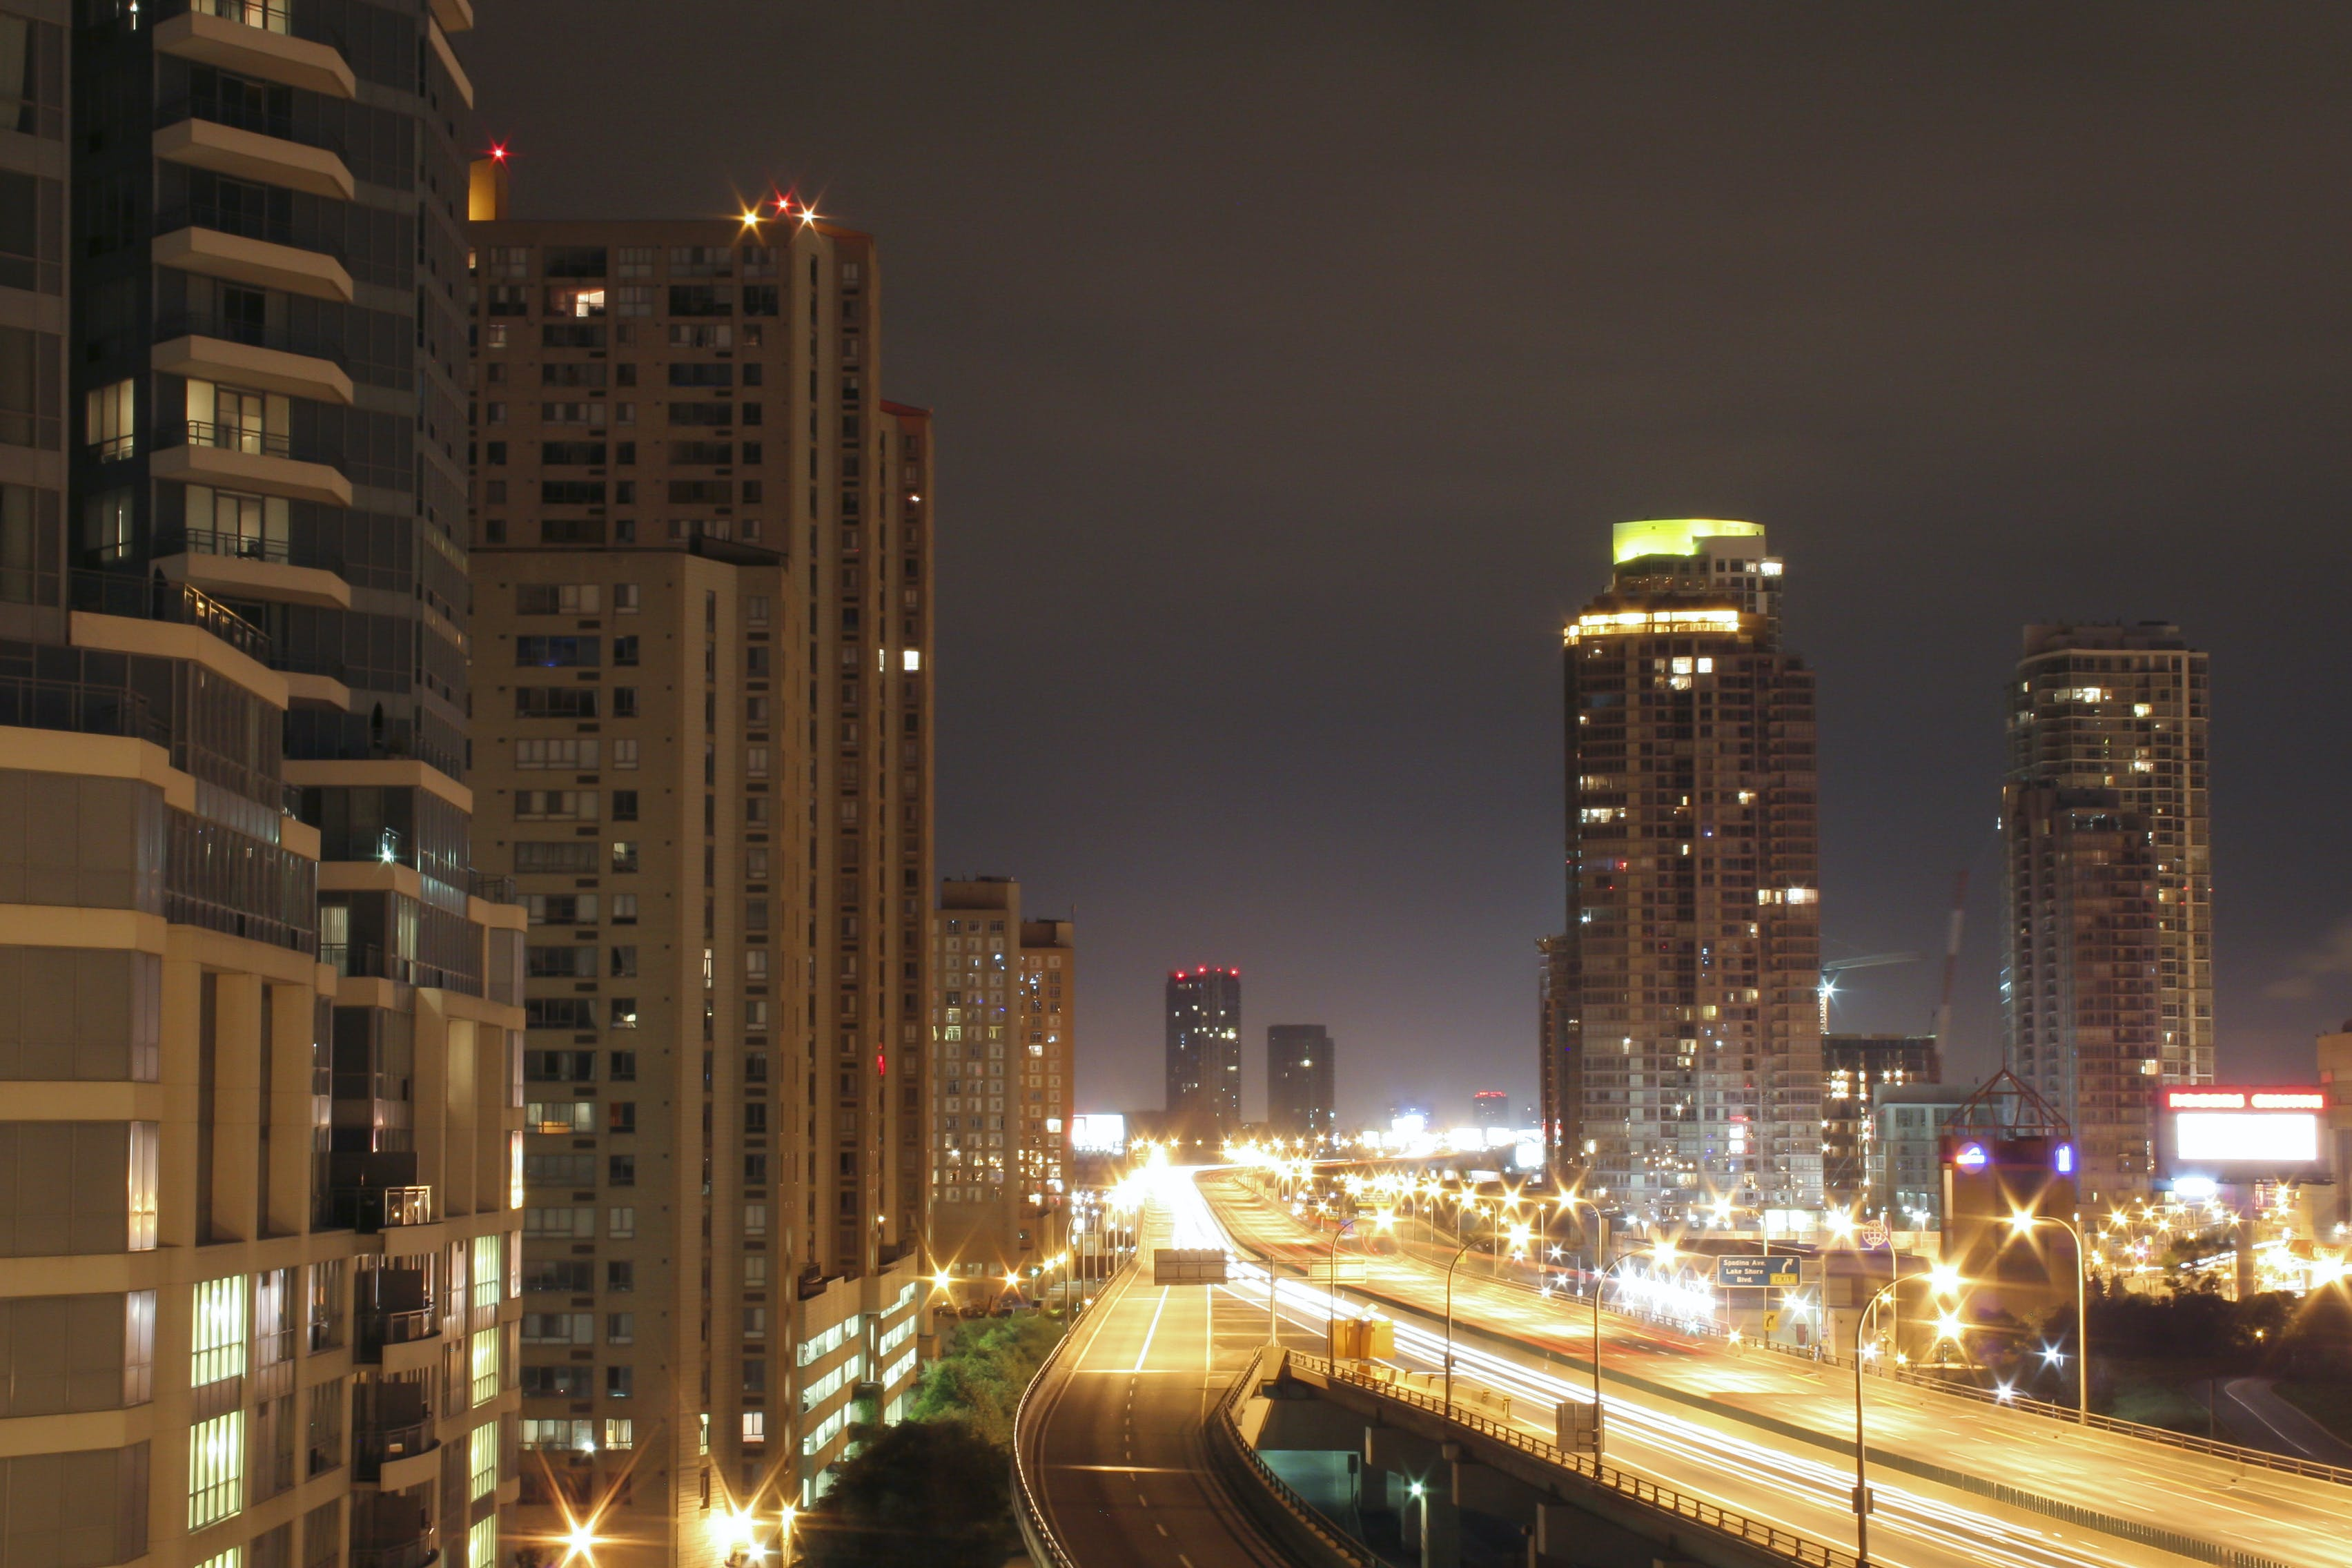 High Rise Building during Night Time